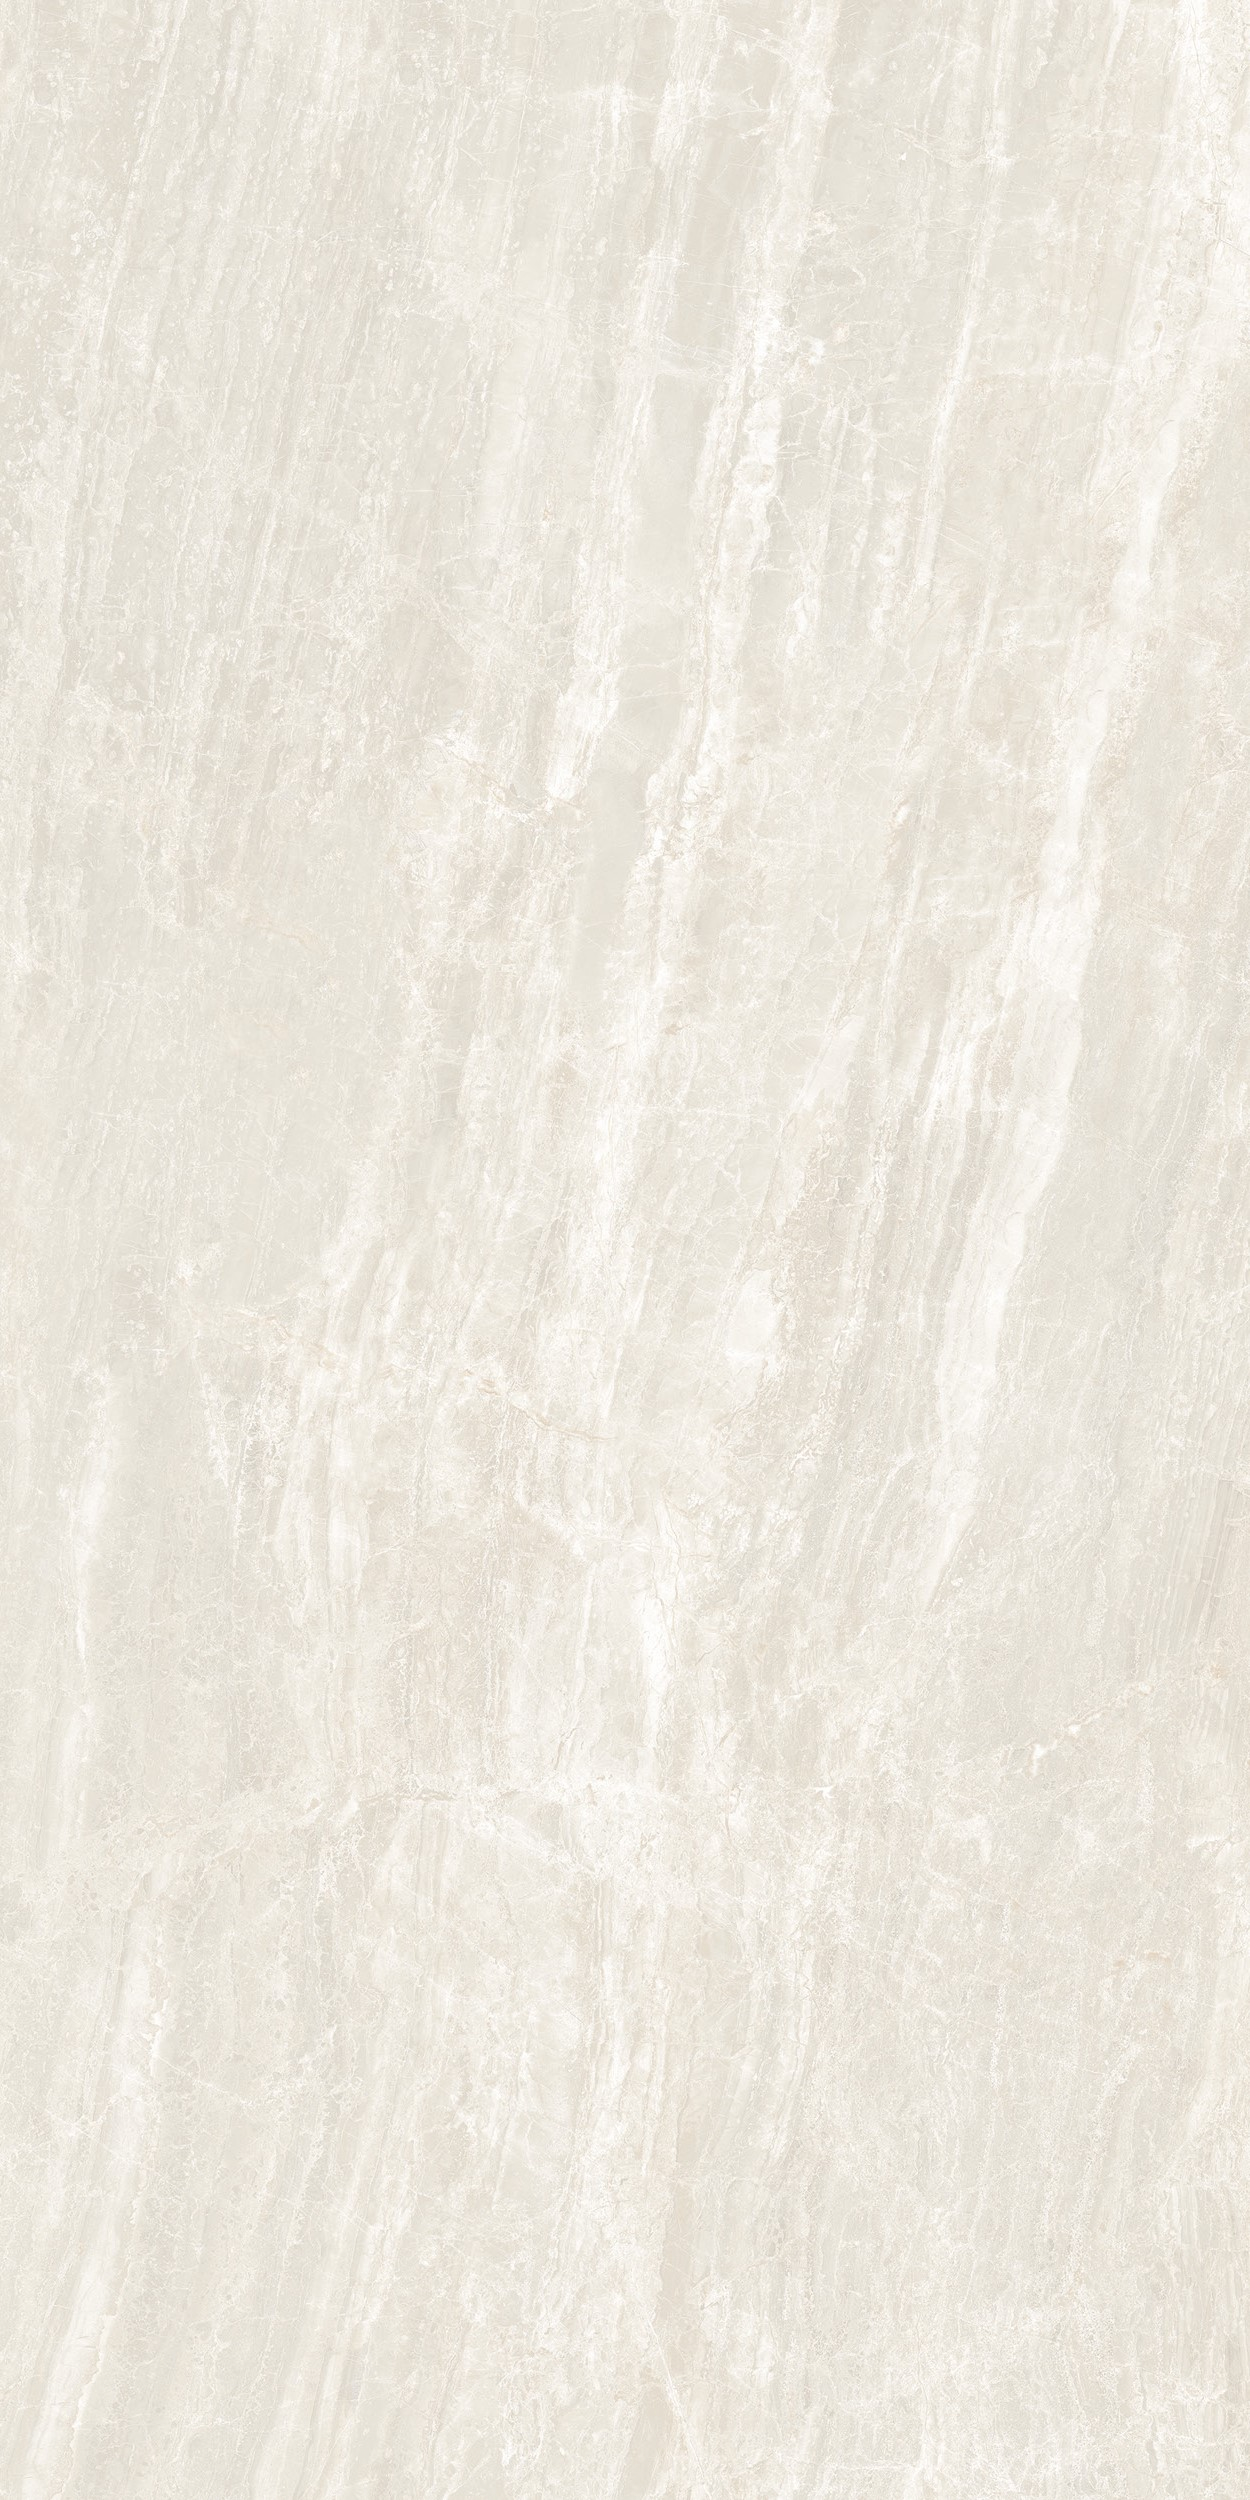 24 X 24 Cosmic White High Polished Rectified Porcelain Tile (SPECIAL ORDER ONLY)